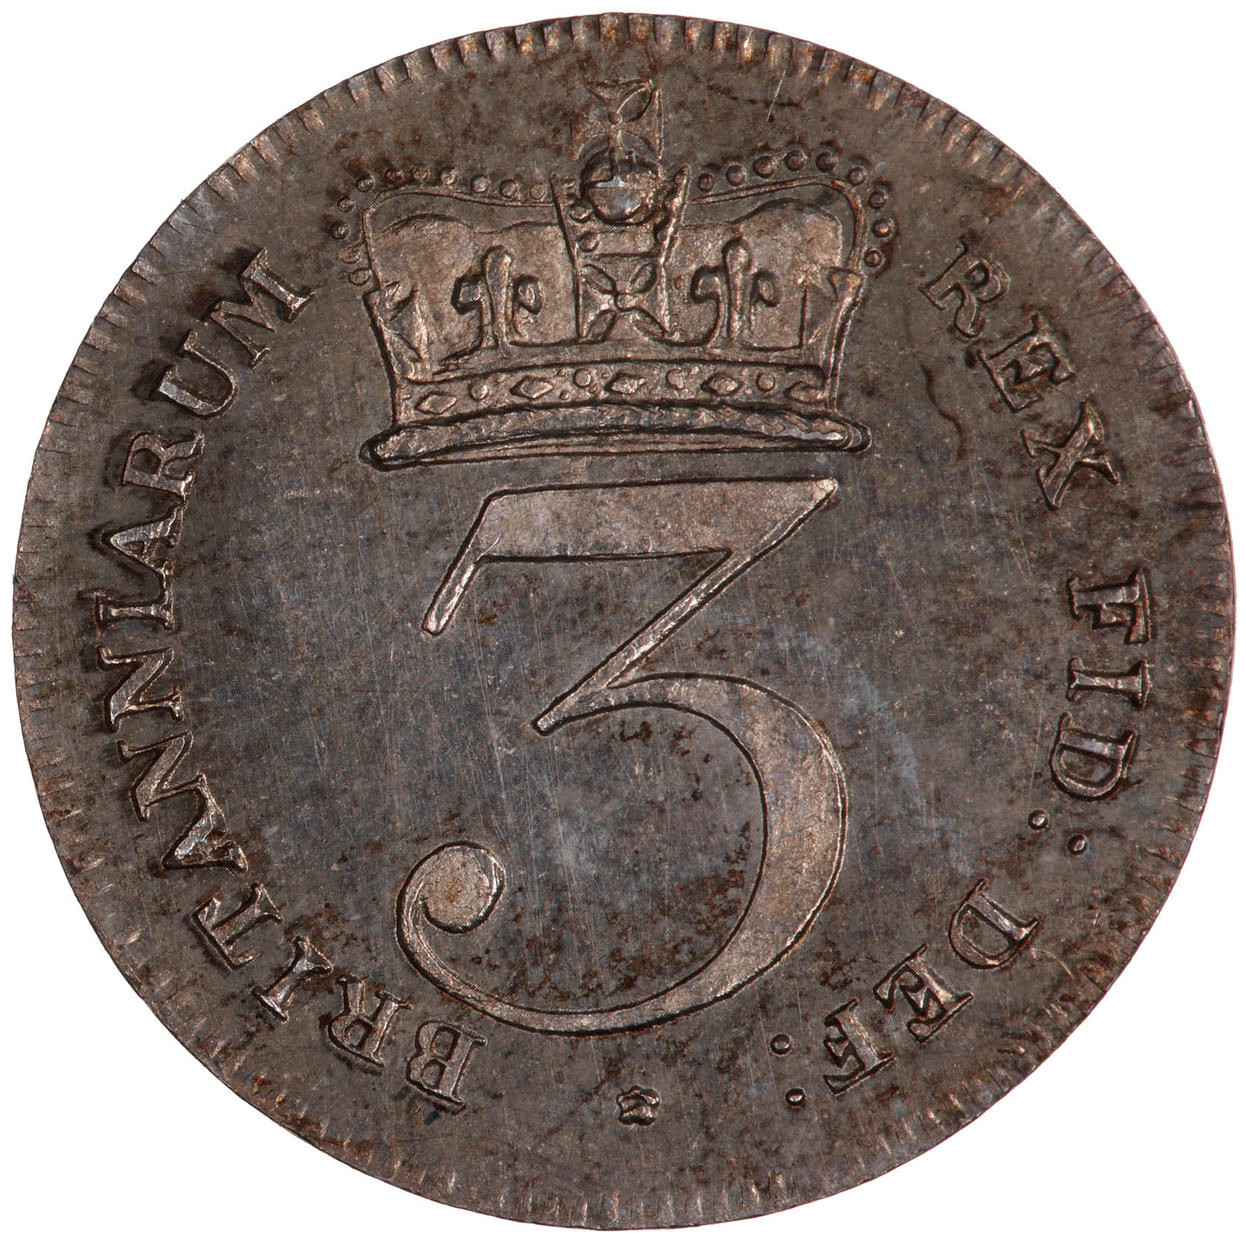 Threepence 1818 (Maundy): Photo Coin - Threepence, George III, Great Britain, 1818